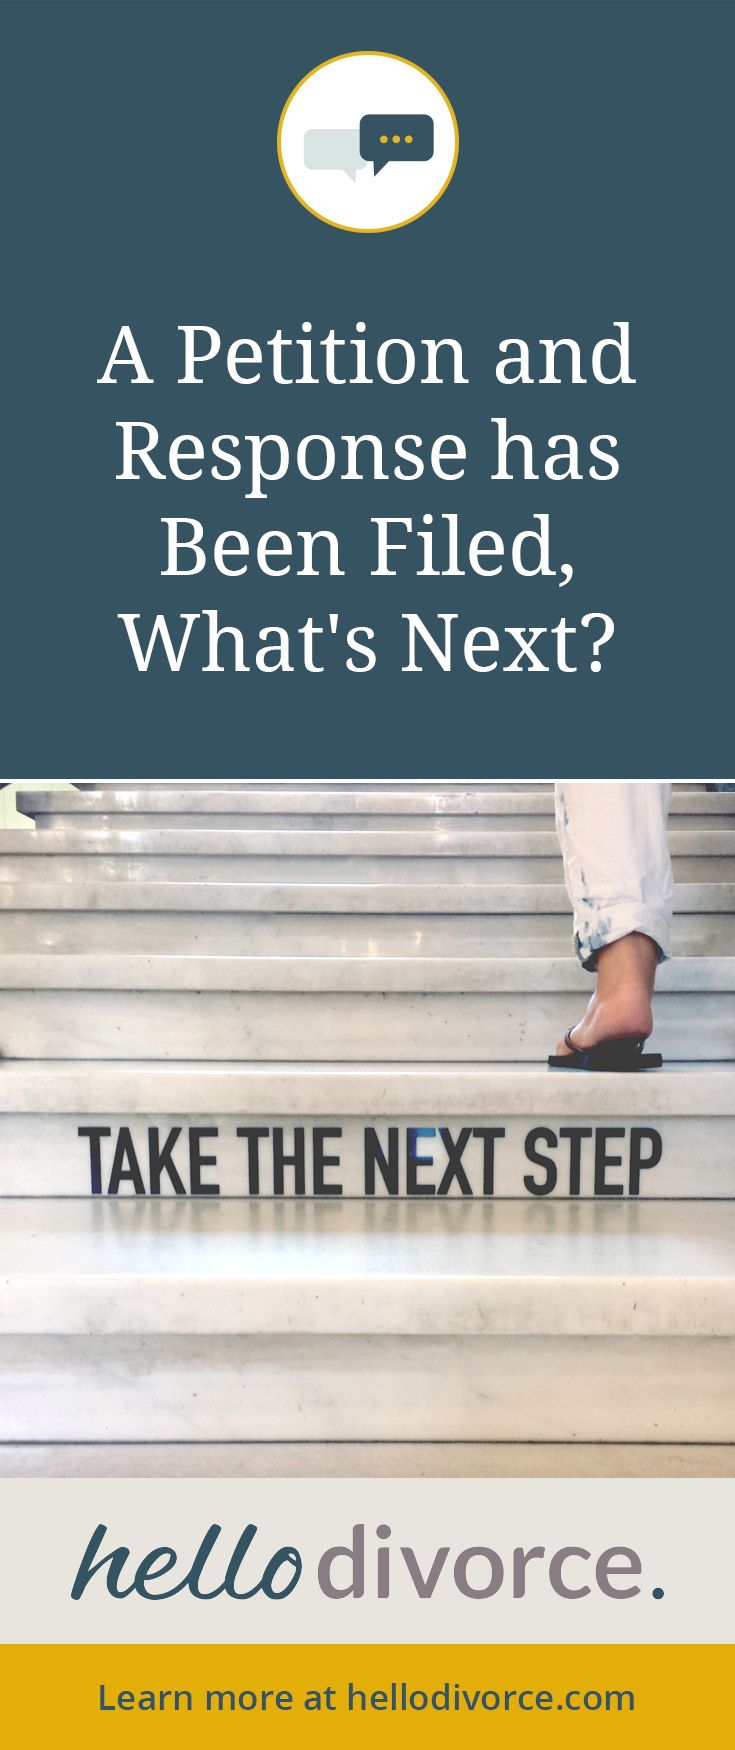 A #California #divorce #petition and #response has been #filed. What's next? Sign up for free access to self help. #DIYdivorce #divorcehelp #divorcecoach #divorceprocess #divnav #yougotthis